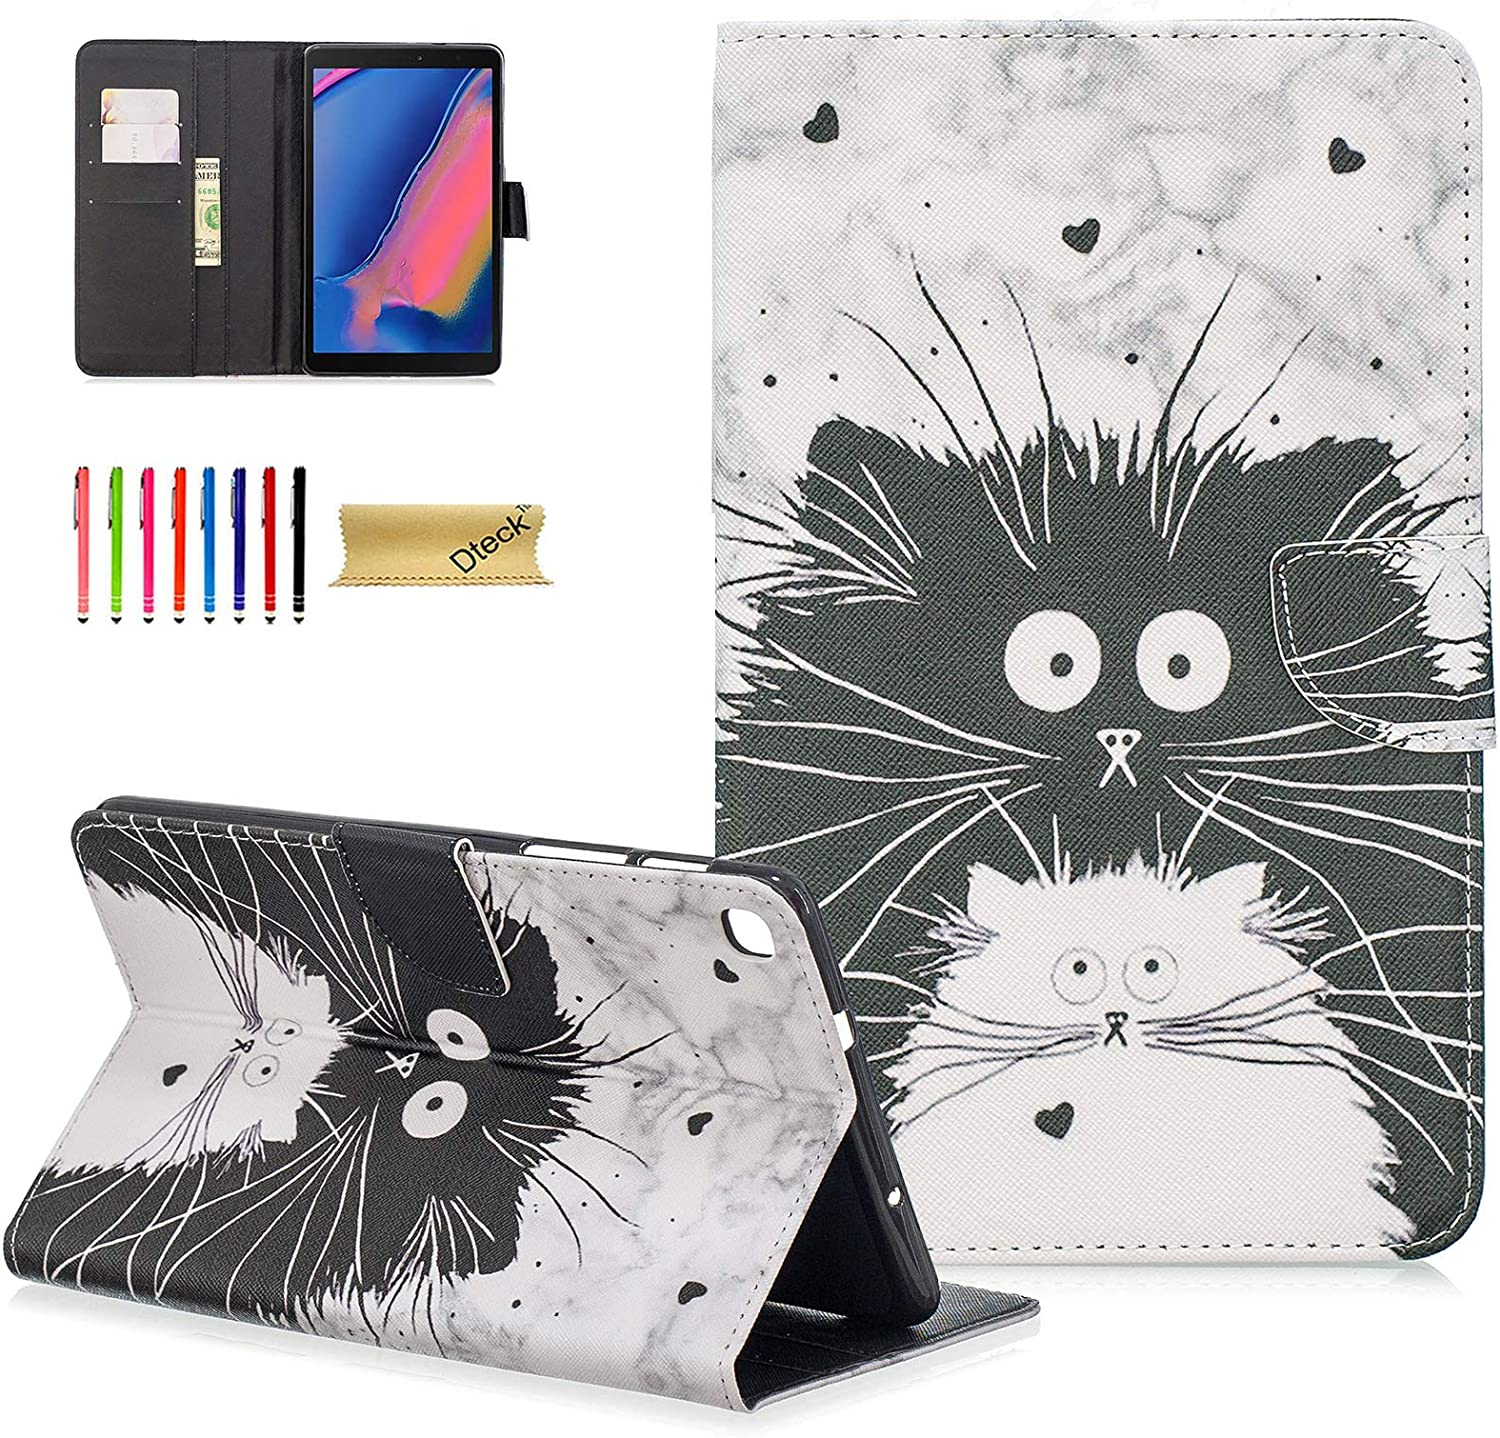 Galaxy Tab A 8 0 With S Pen 2019 Case Deck Lightweight Slim Fit Folio Stand Case For Samsung Galaxy Tab A With S Pen 8 0 Sm P200 Wi Fi Sm P205 Lte 2019 Release Tablet